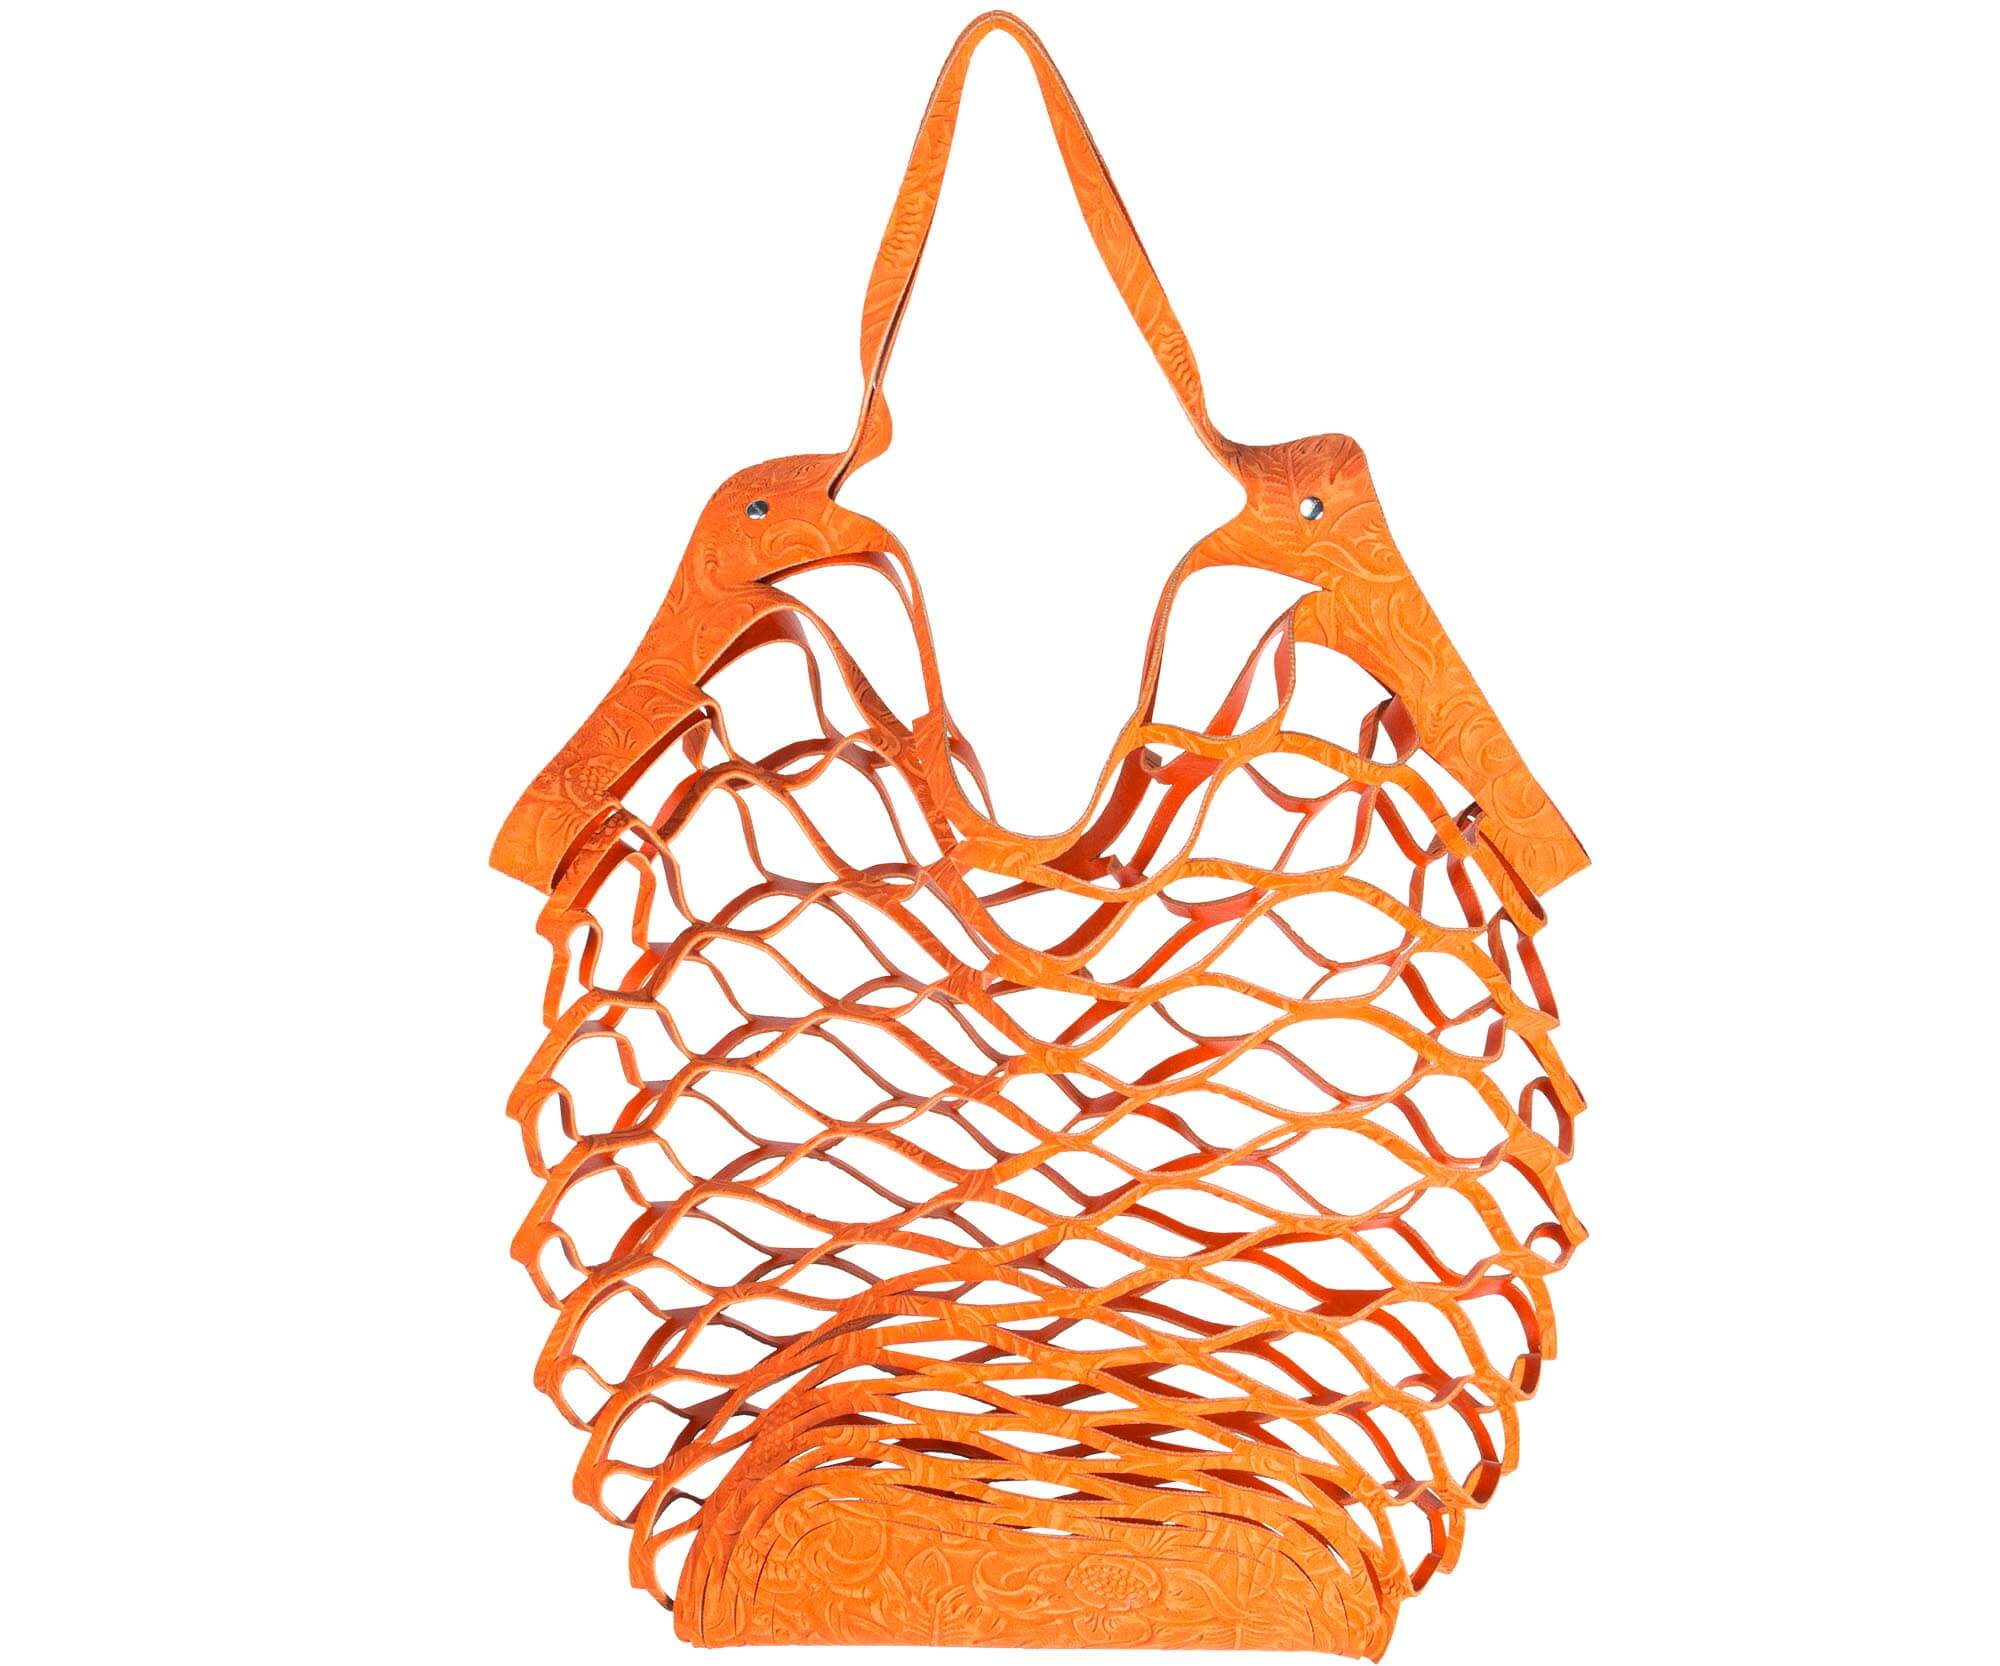 Vanzetti cut out bag oranje